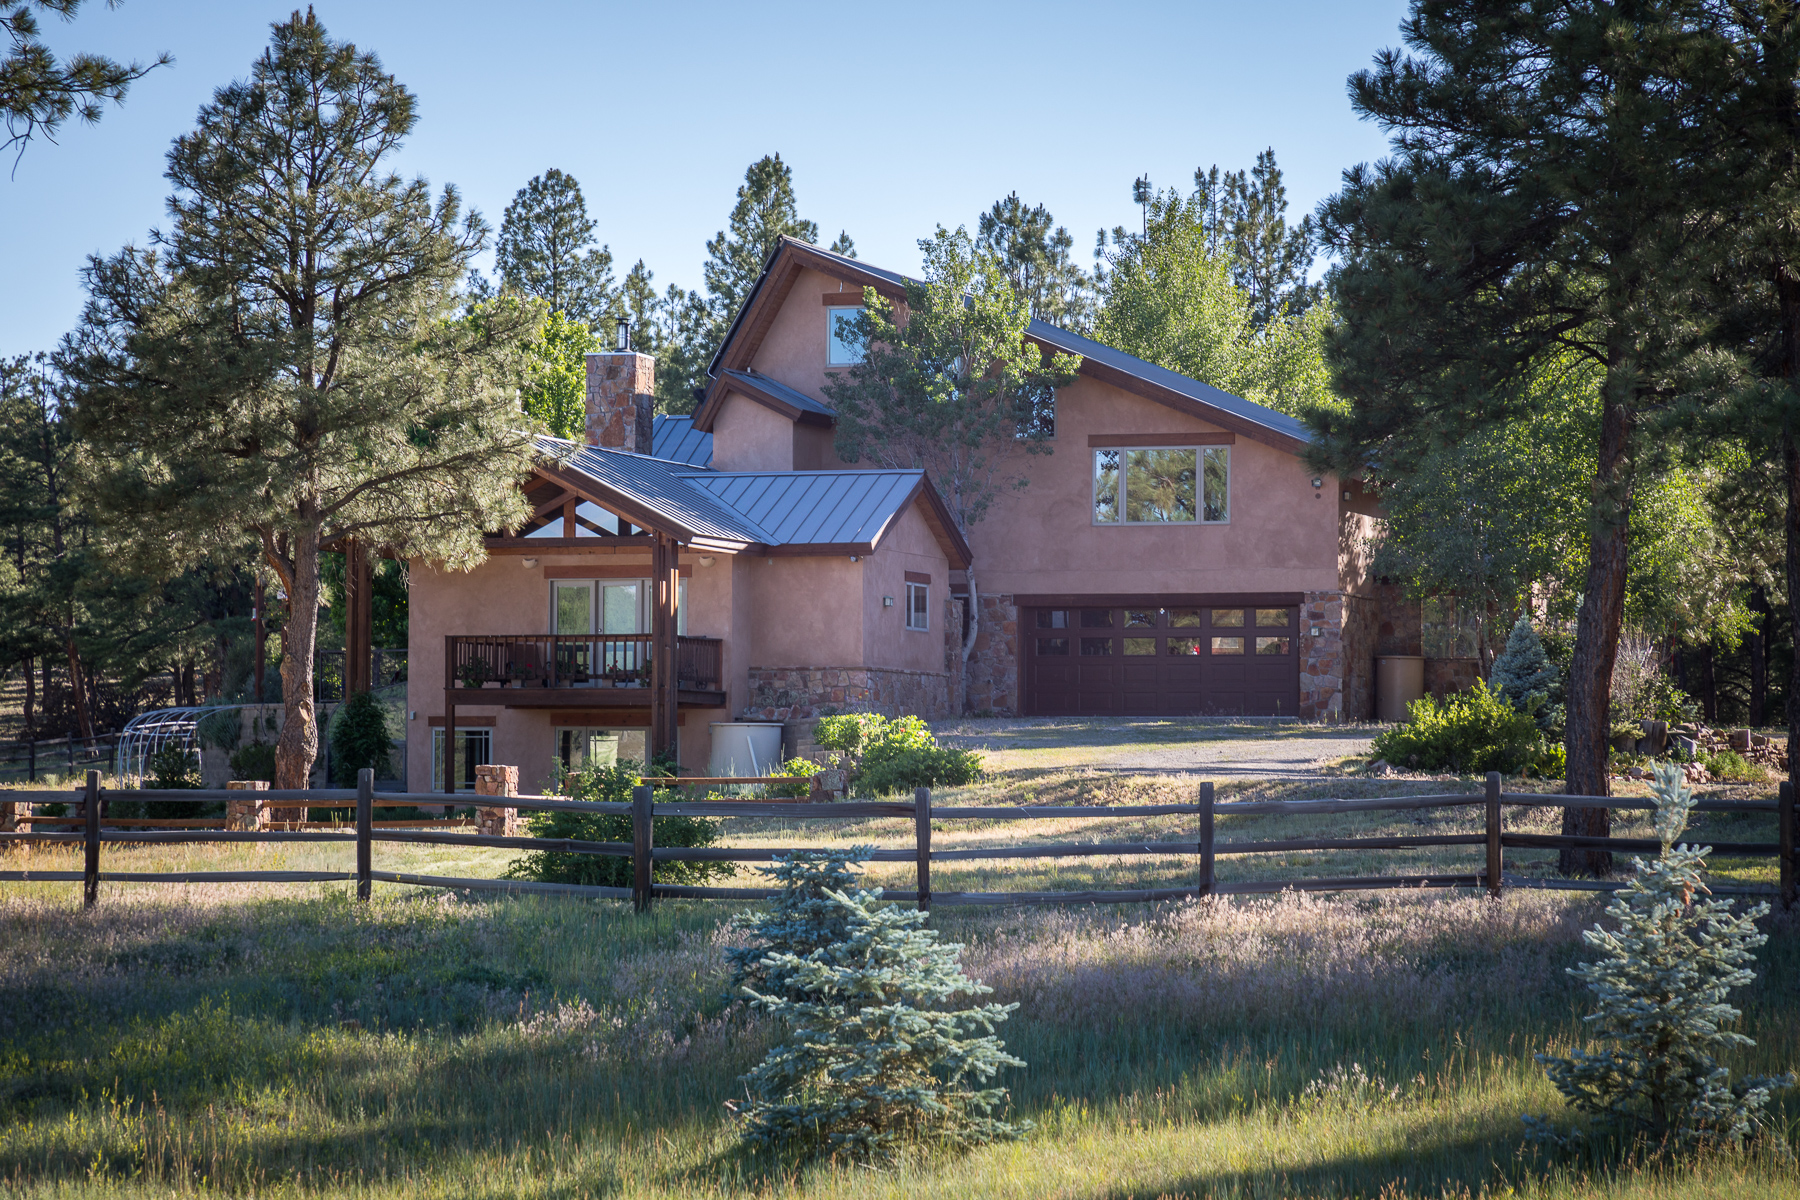 Single Family Home for Active at Peaceful Meadow Ranch 2415 Echo Canyon Ranch Lane Pagosa Springs, Colorado 81147 United States